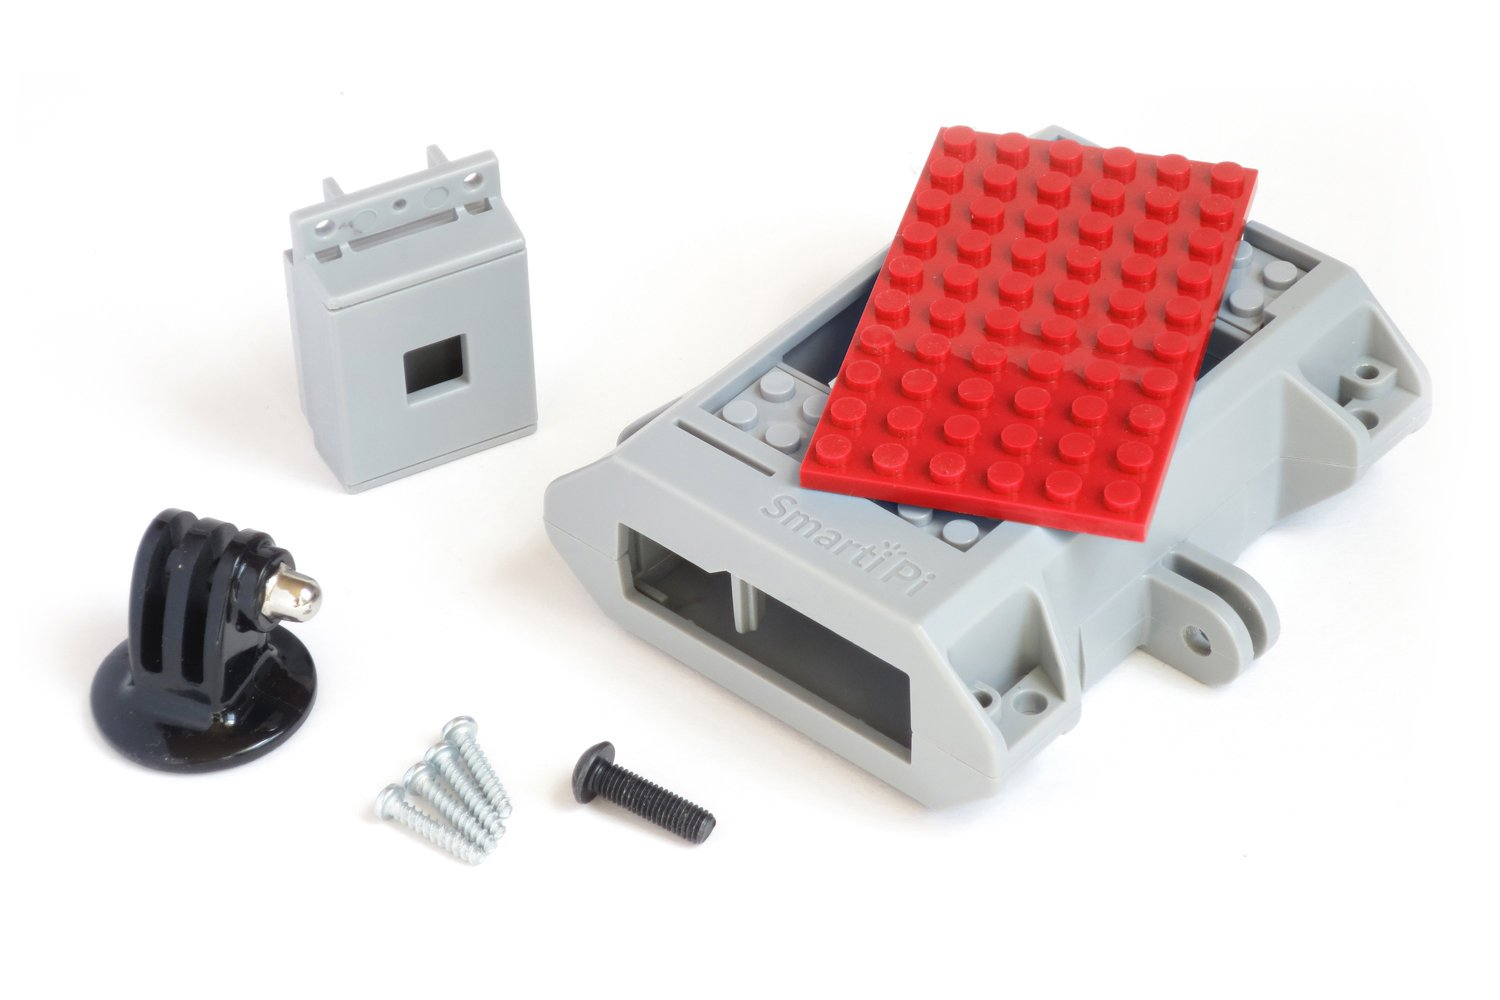 Building Block Compatible SmartiPi Raspberry Pi B+,2, 3, and Pi 3 B+ case w/Camera Case and GoPro Compatible Mount, Red